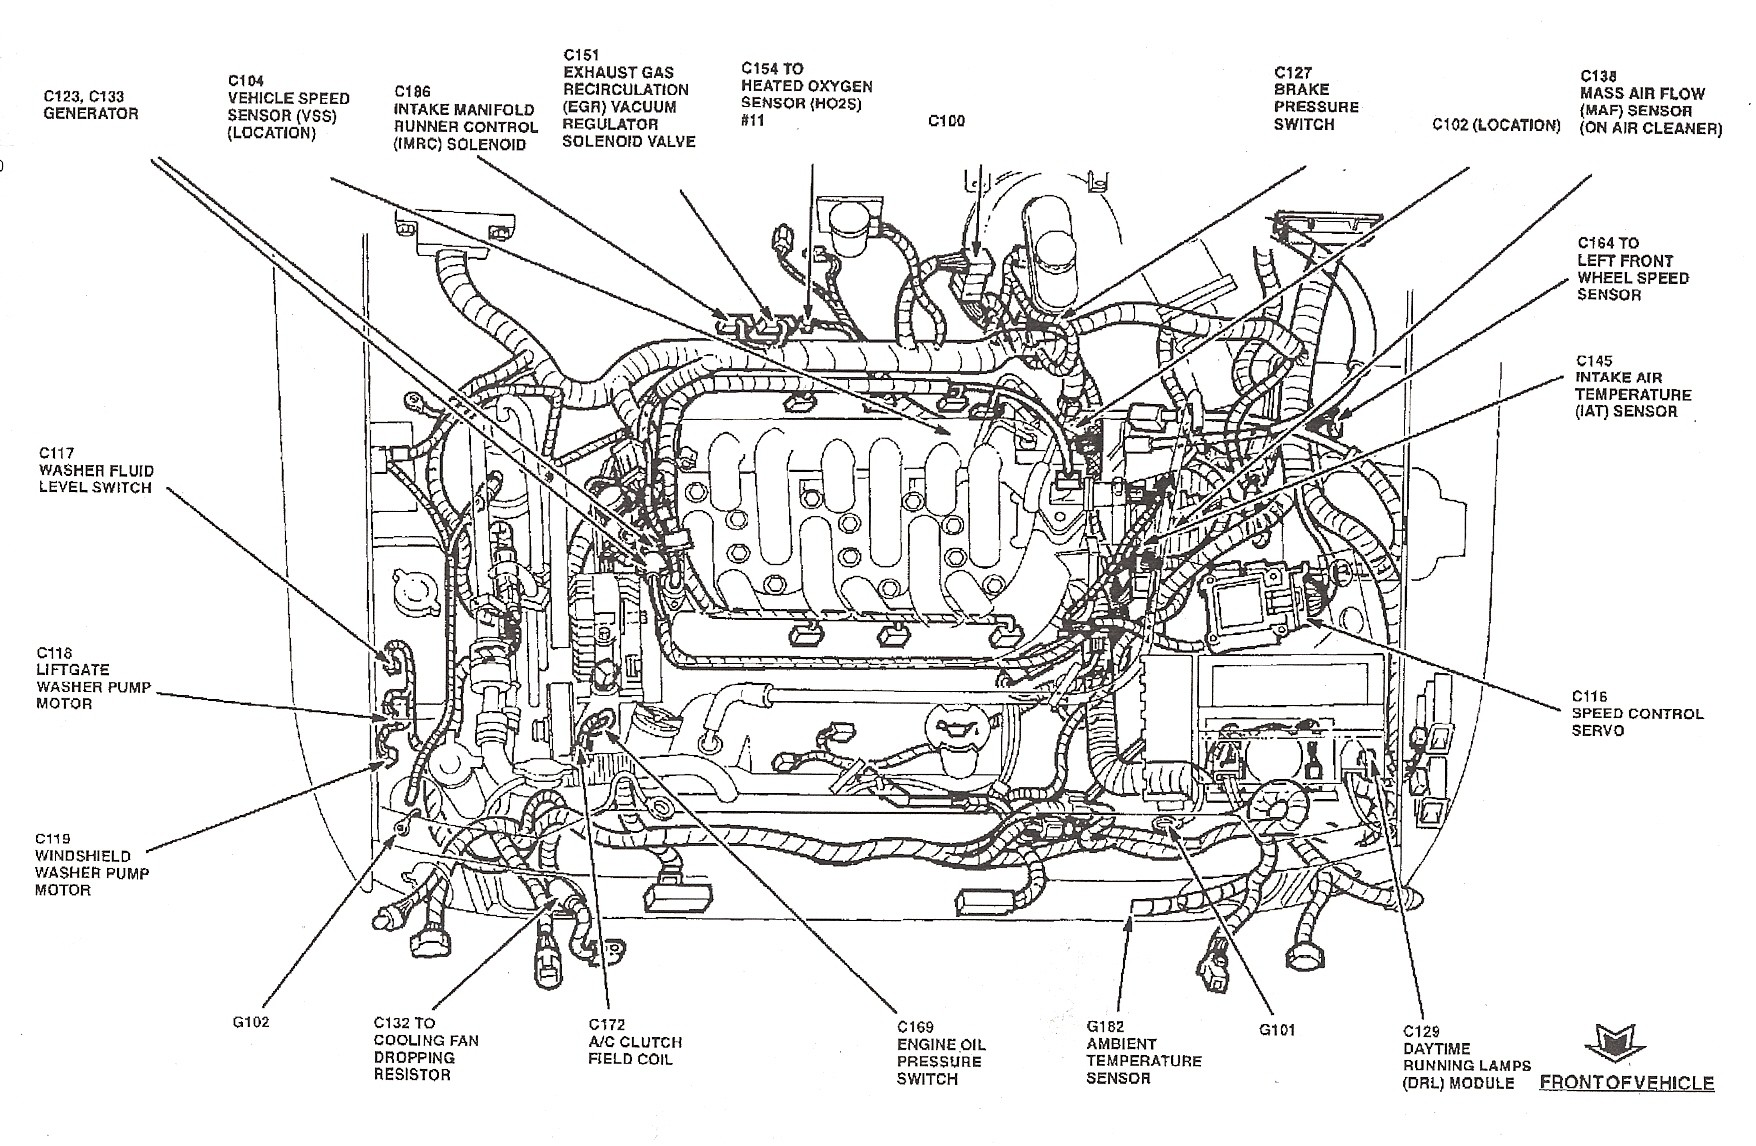 08 Ford Focus Engine Diagram Xj6 Fuse Box